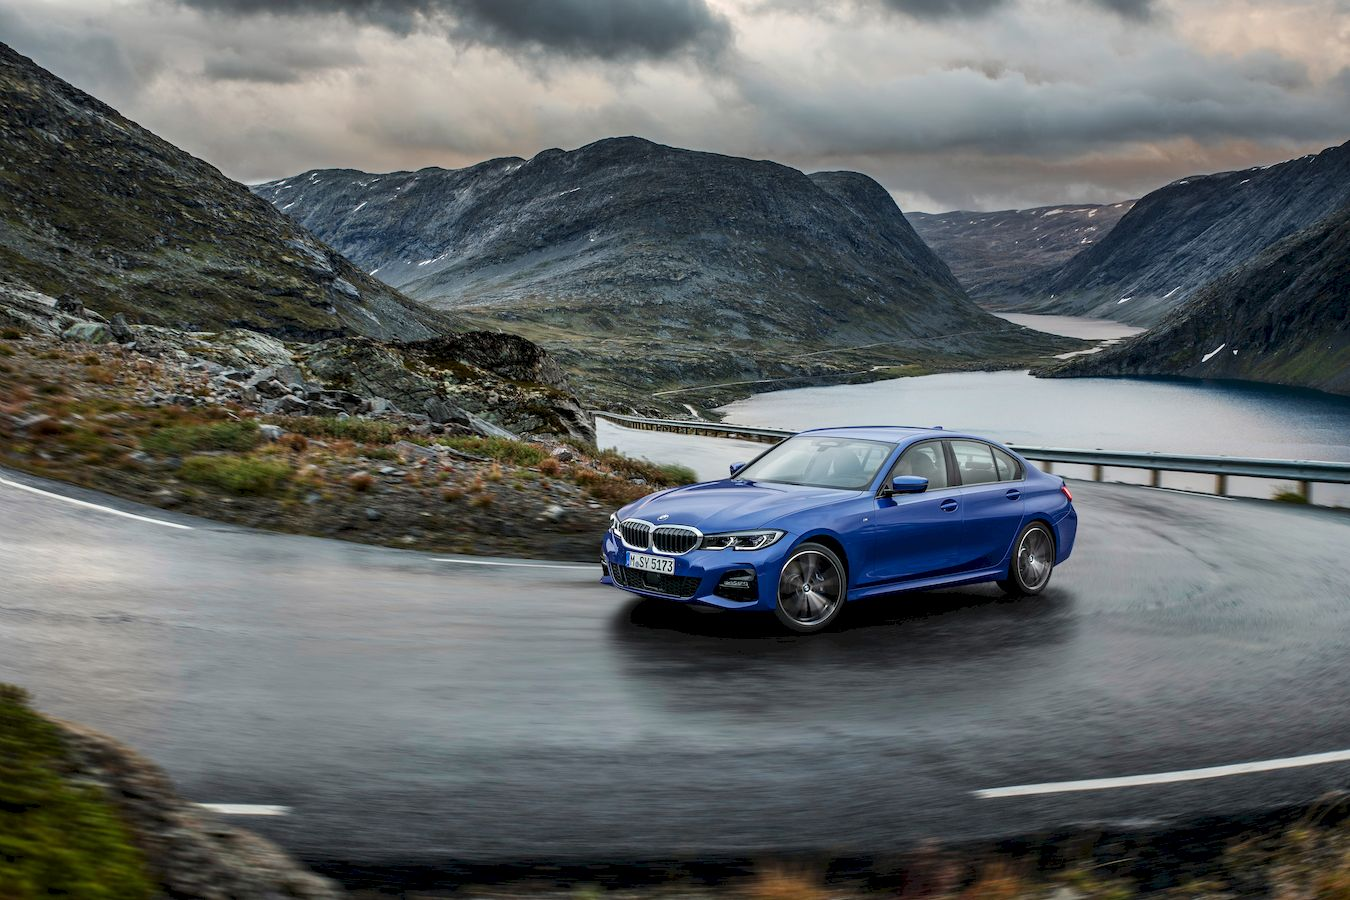 Car review: Here's how the 2019 BMW 3 Series outperforms others in its class